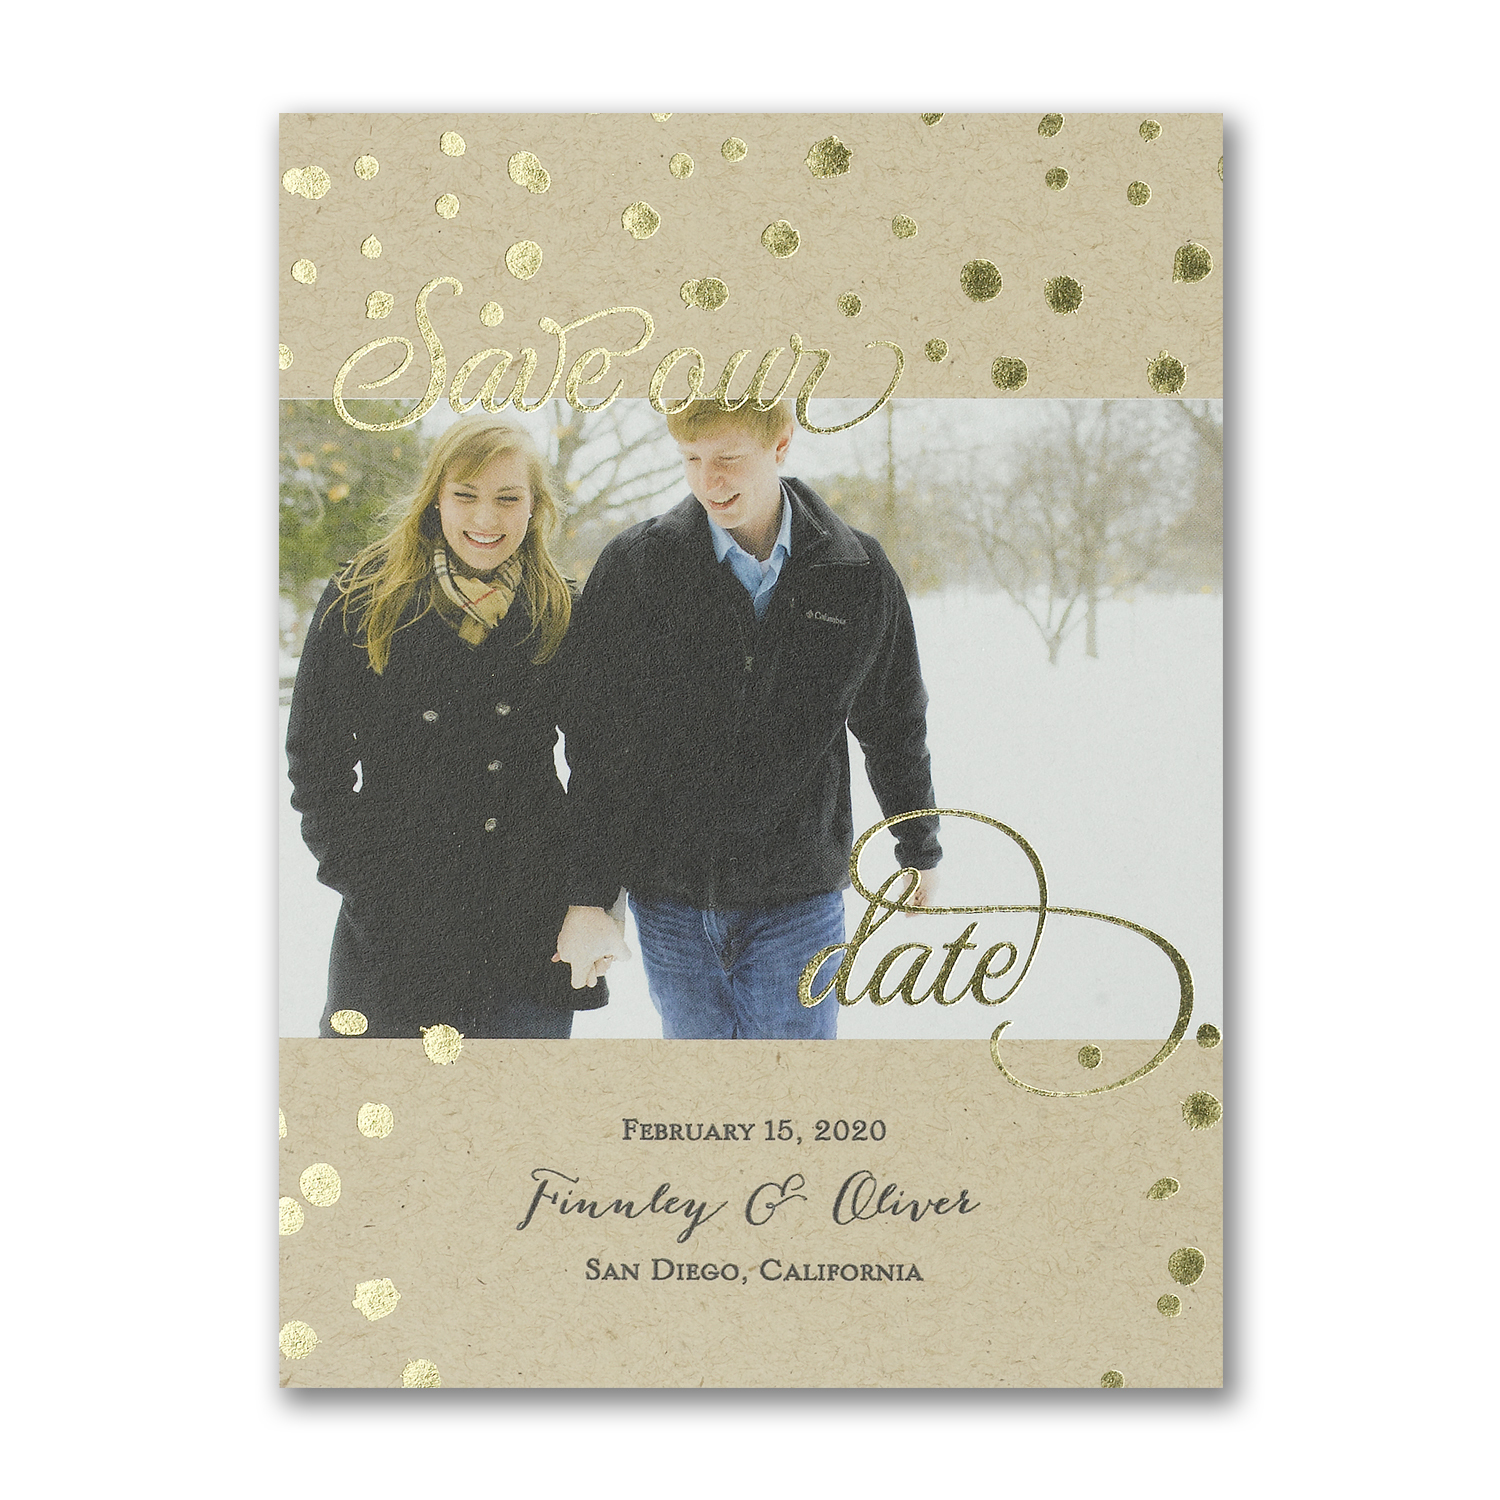 shimmer kraft photo save the date gold foil carlson craft